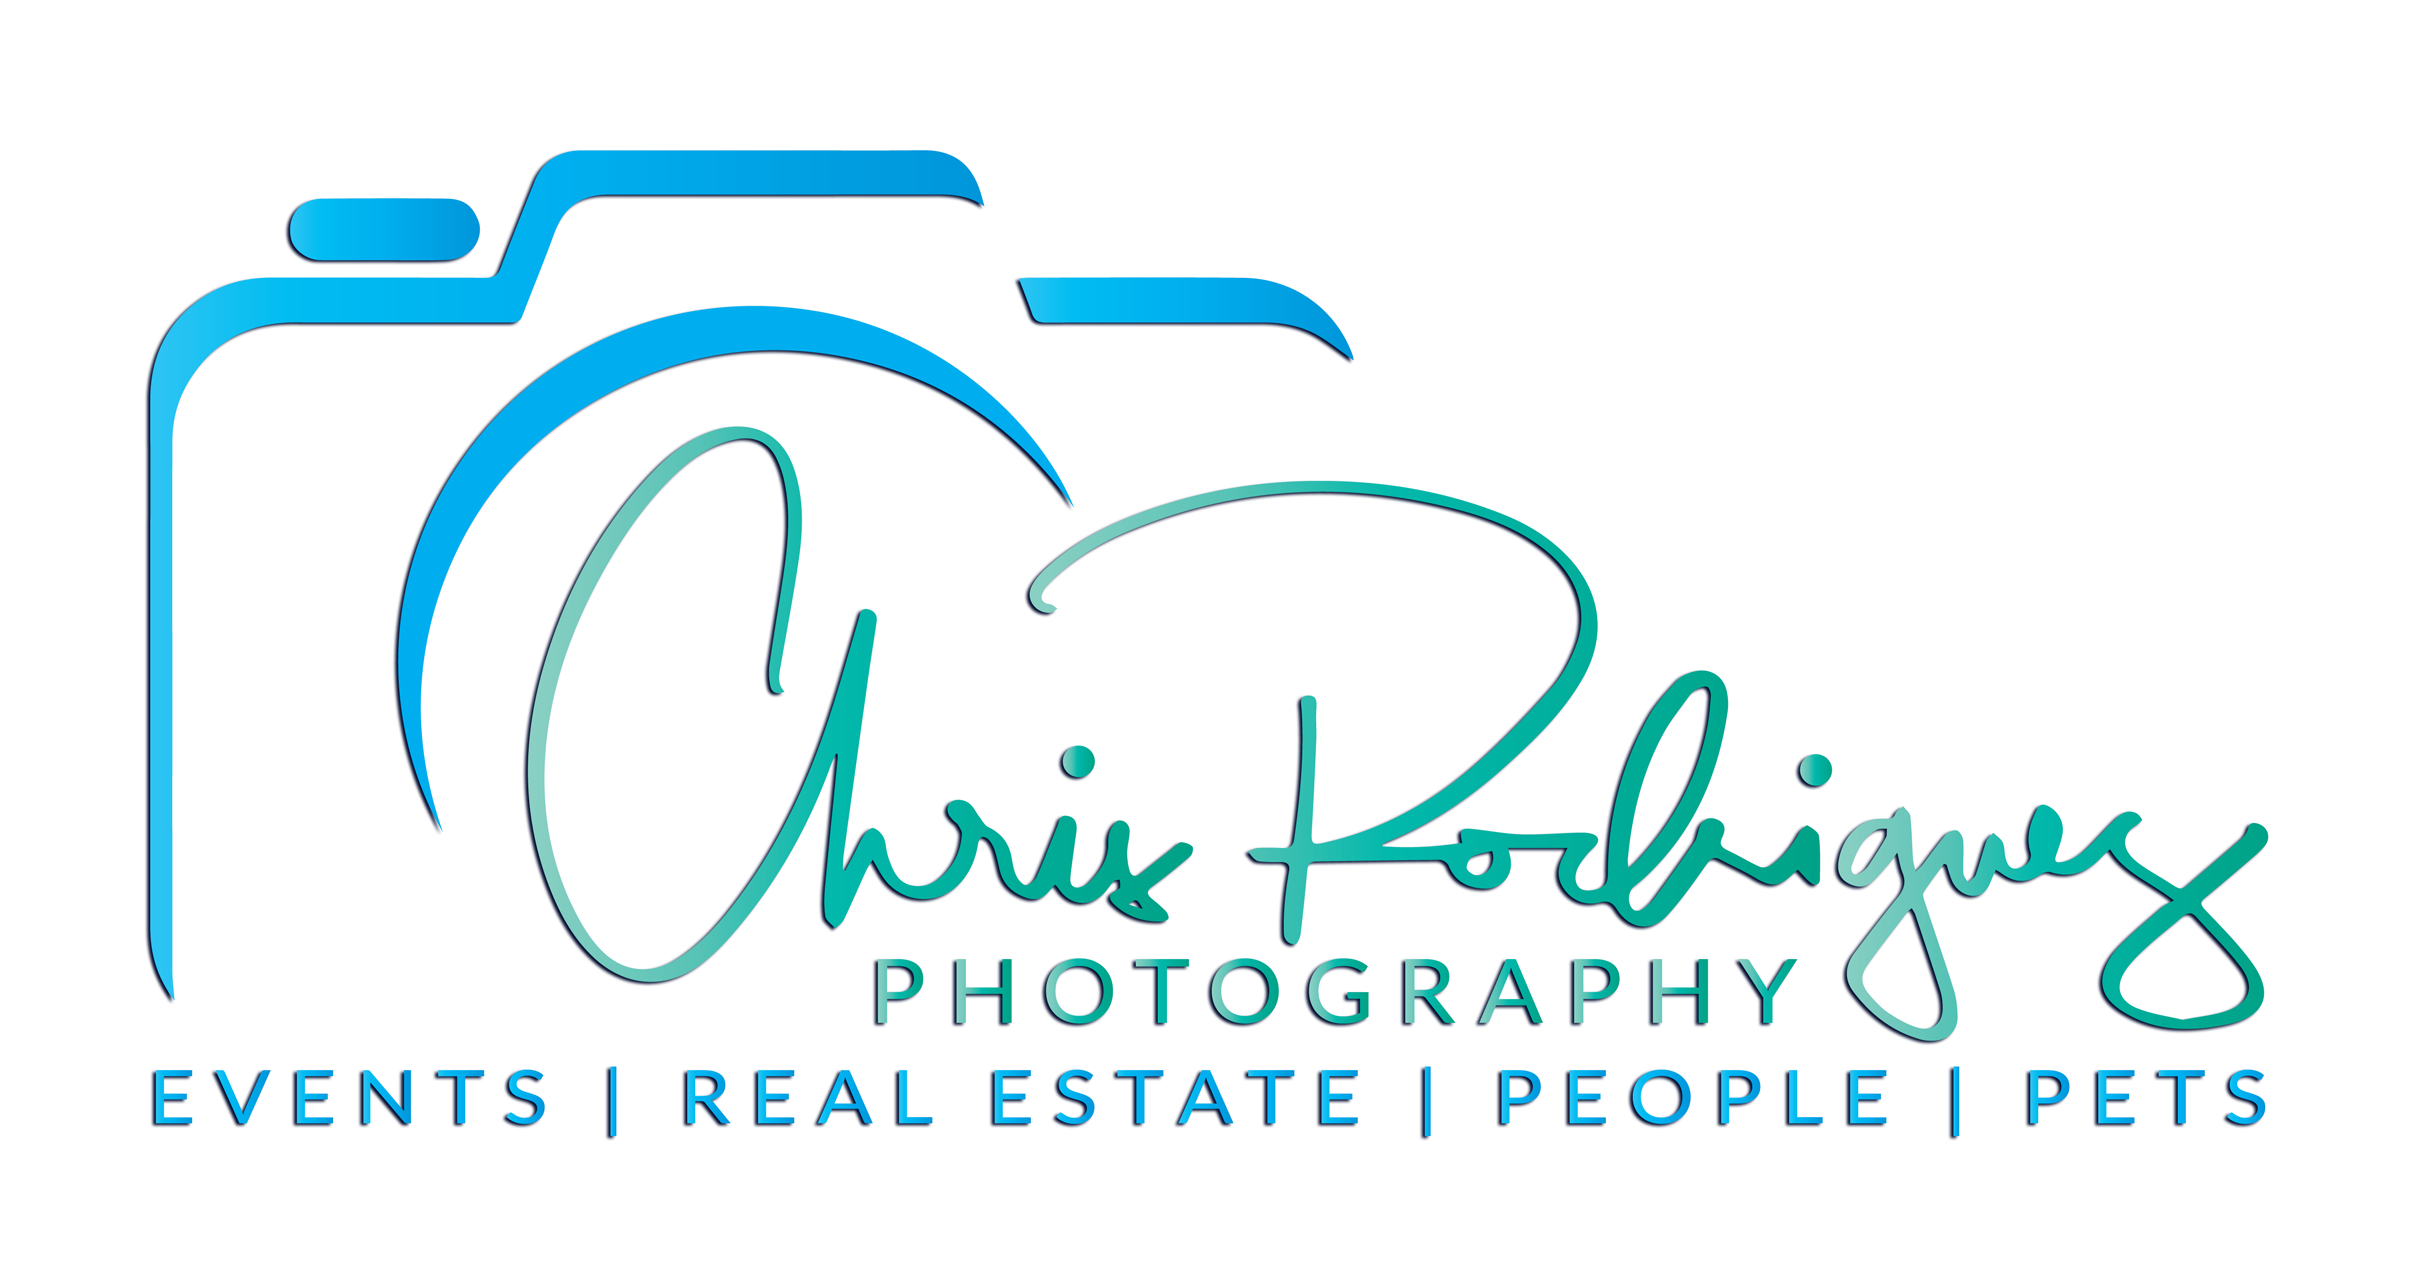 Chris Rodriguez Photography floor plan in Bedford Dallas Denton Fort Worth Waxahachie